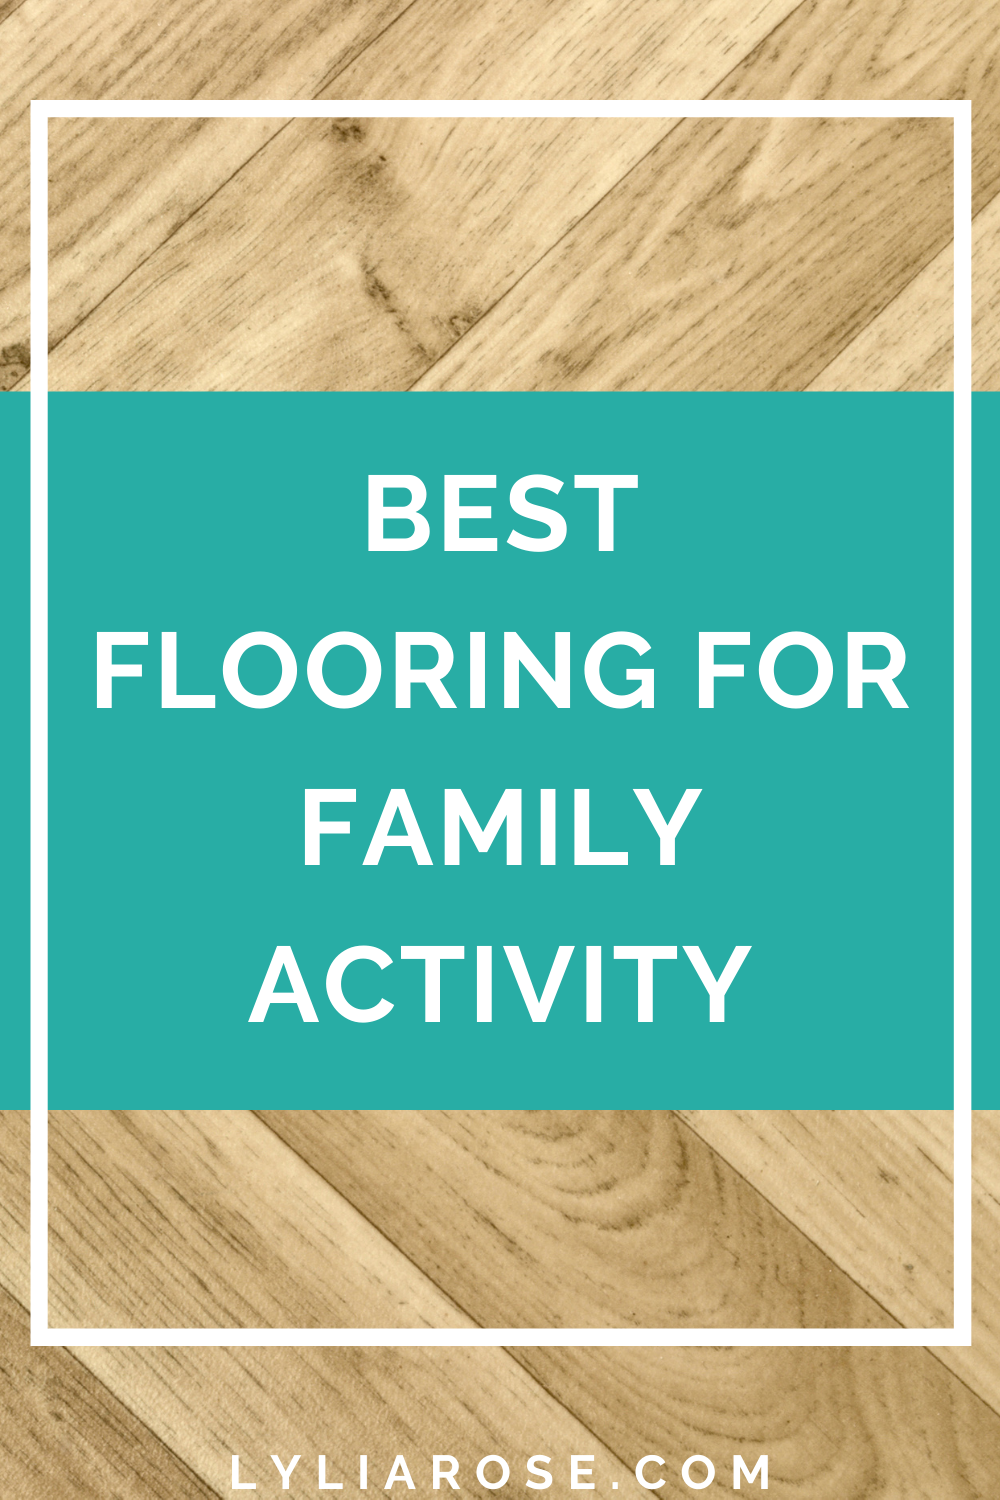 Best flooring for family activity